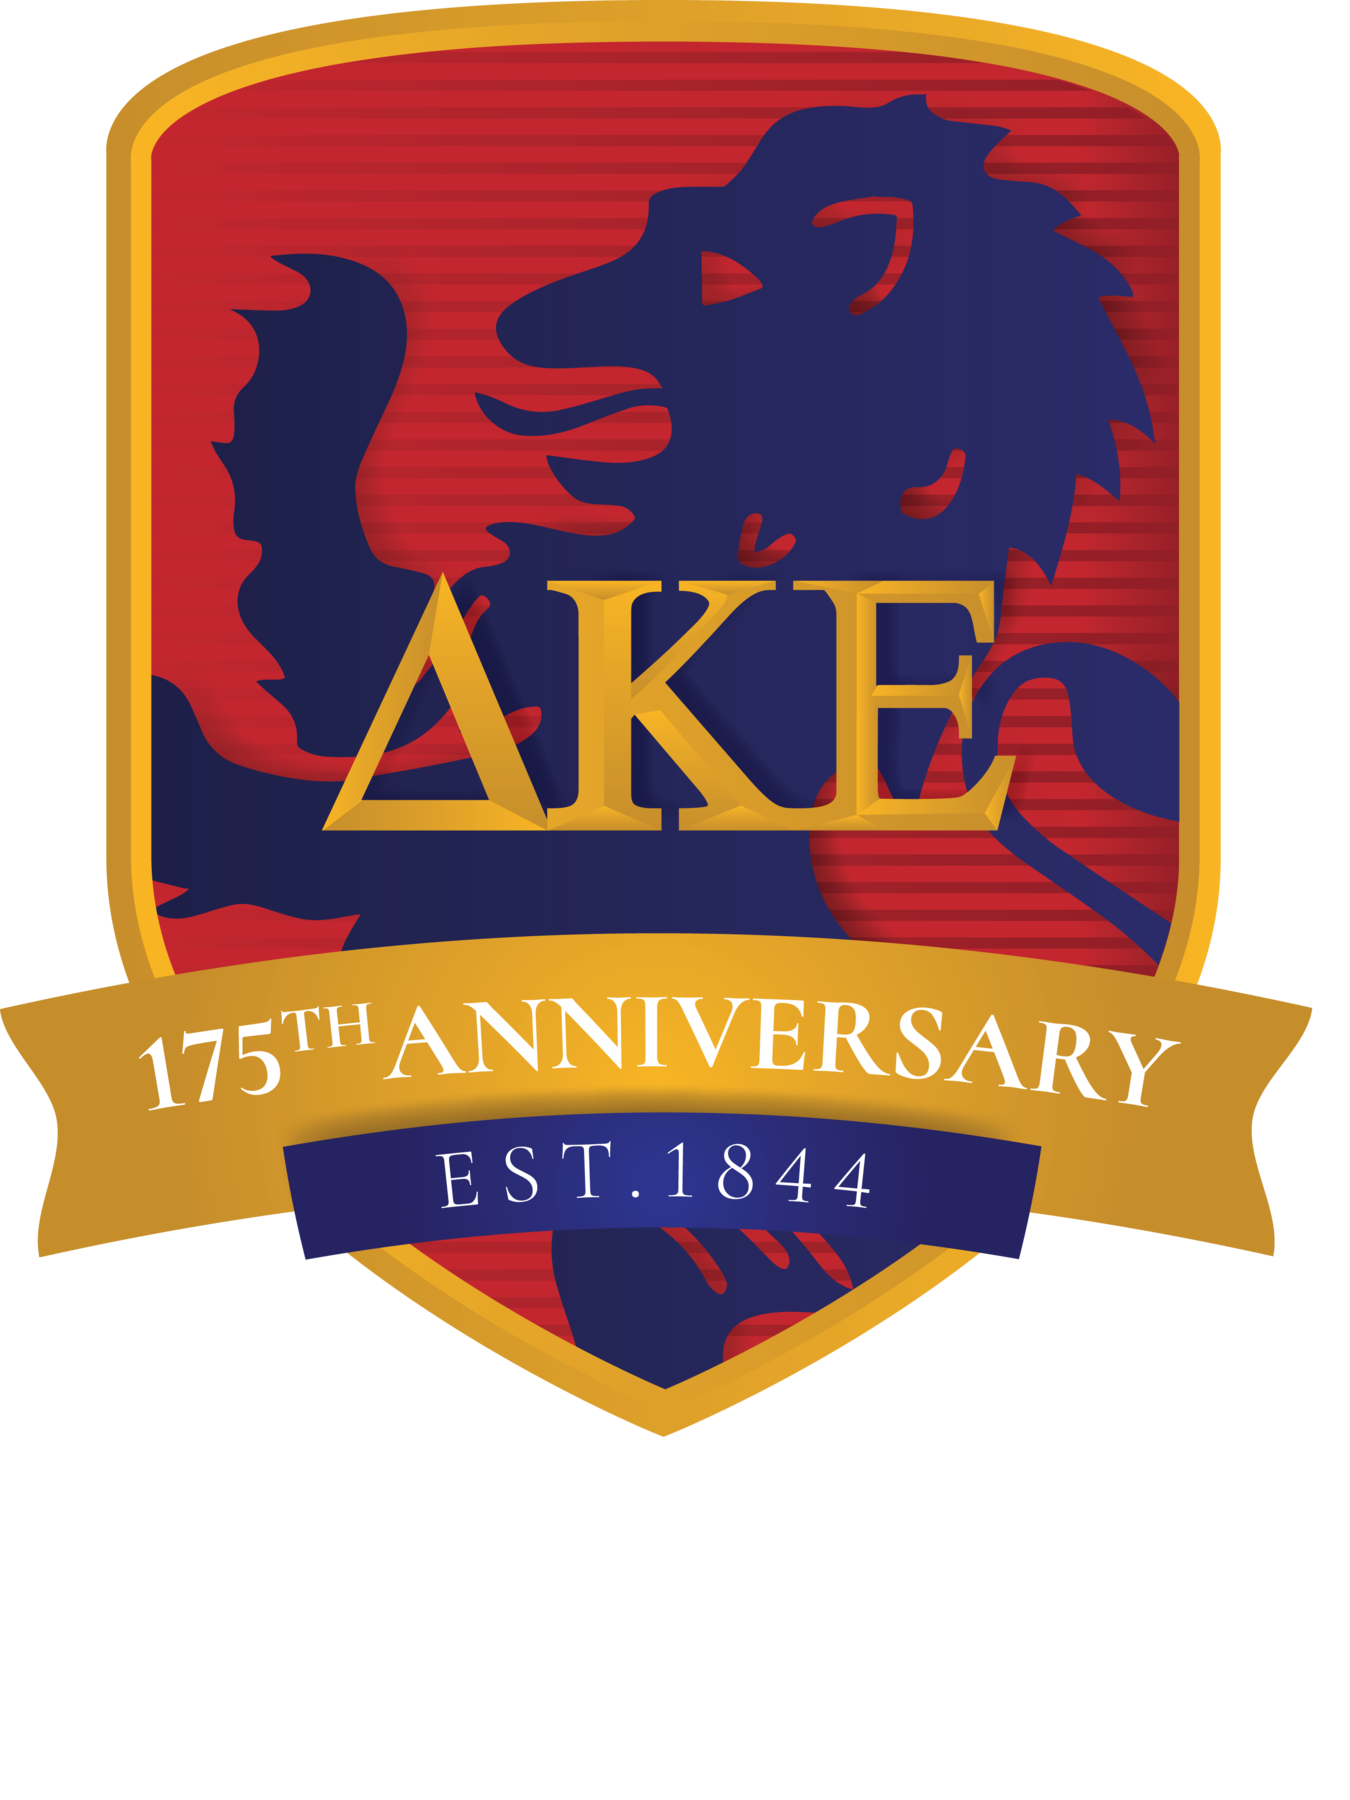 The Deke Foundation: 175th Anniversary Bonds of Brotherhood Campaign